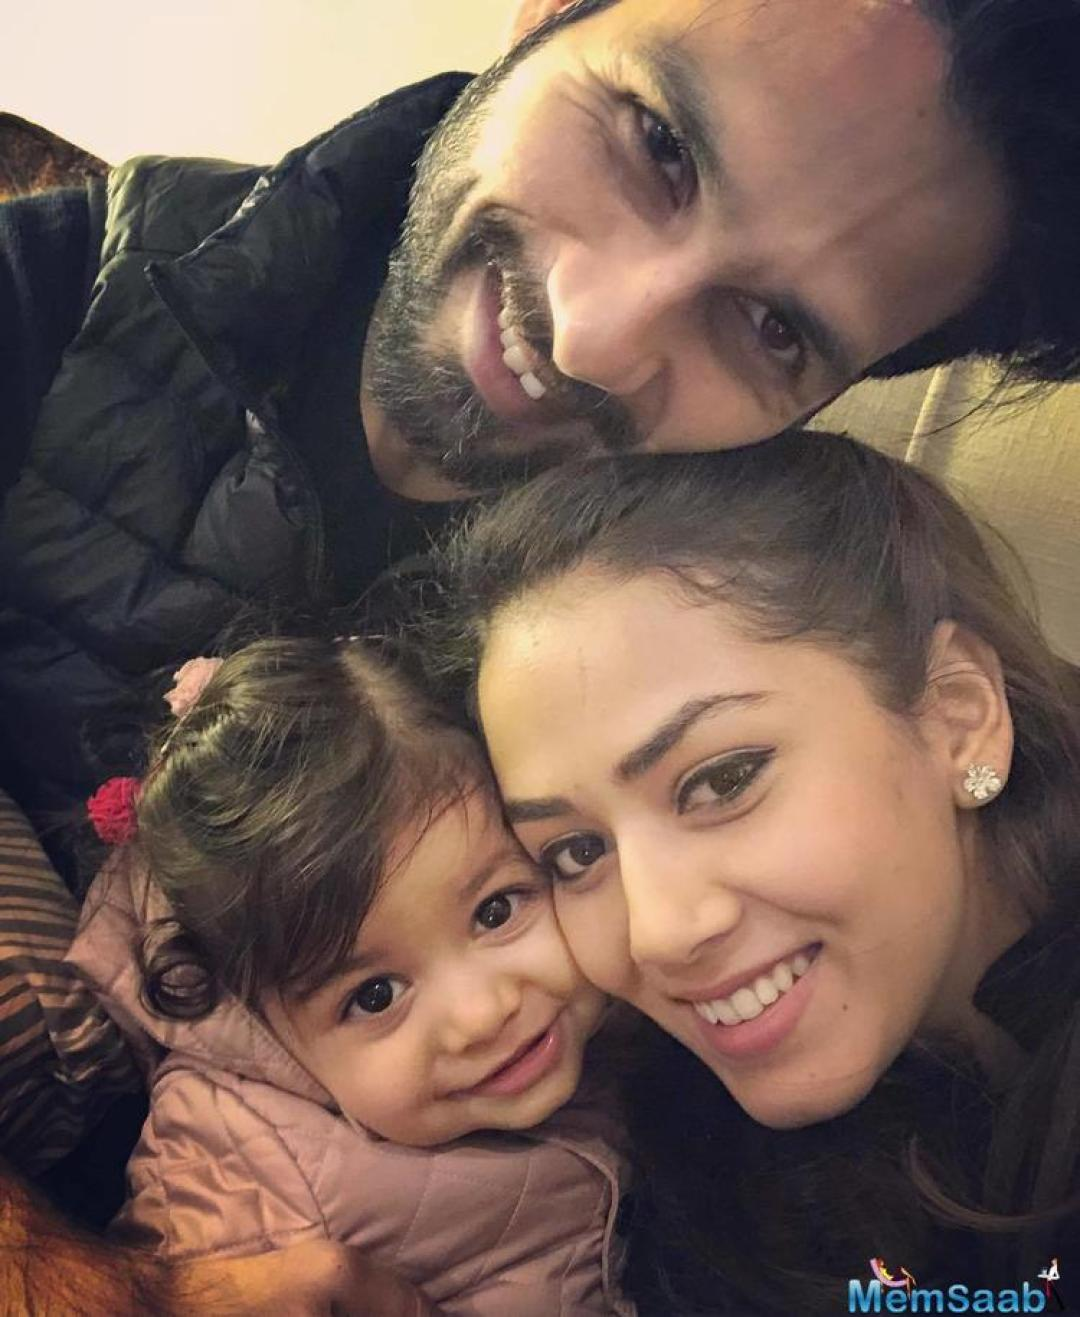 Shahid doesn't want his darling daughter Misha to be exposed to the glare at such a tender age.